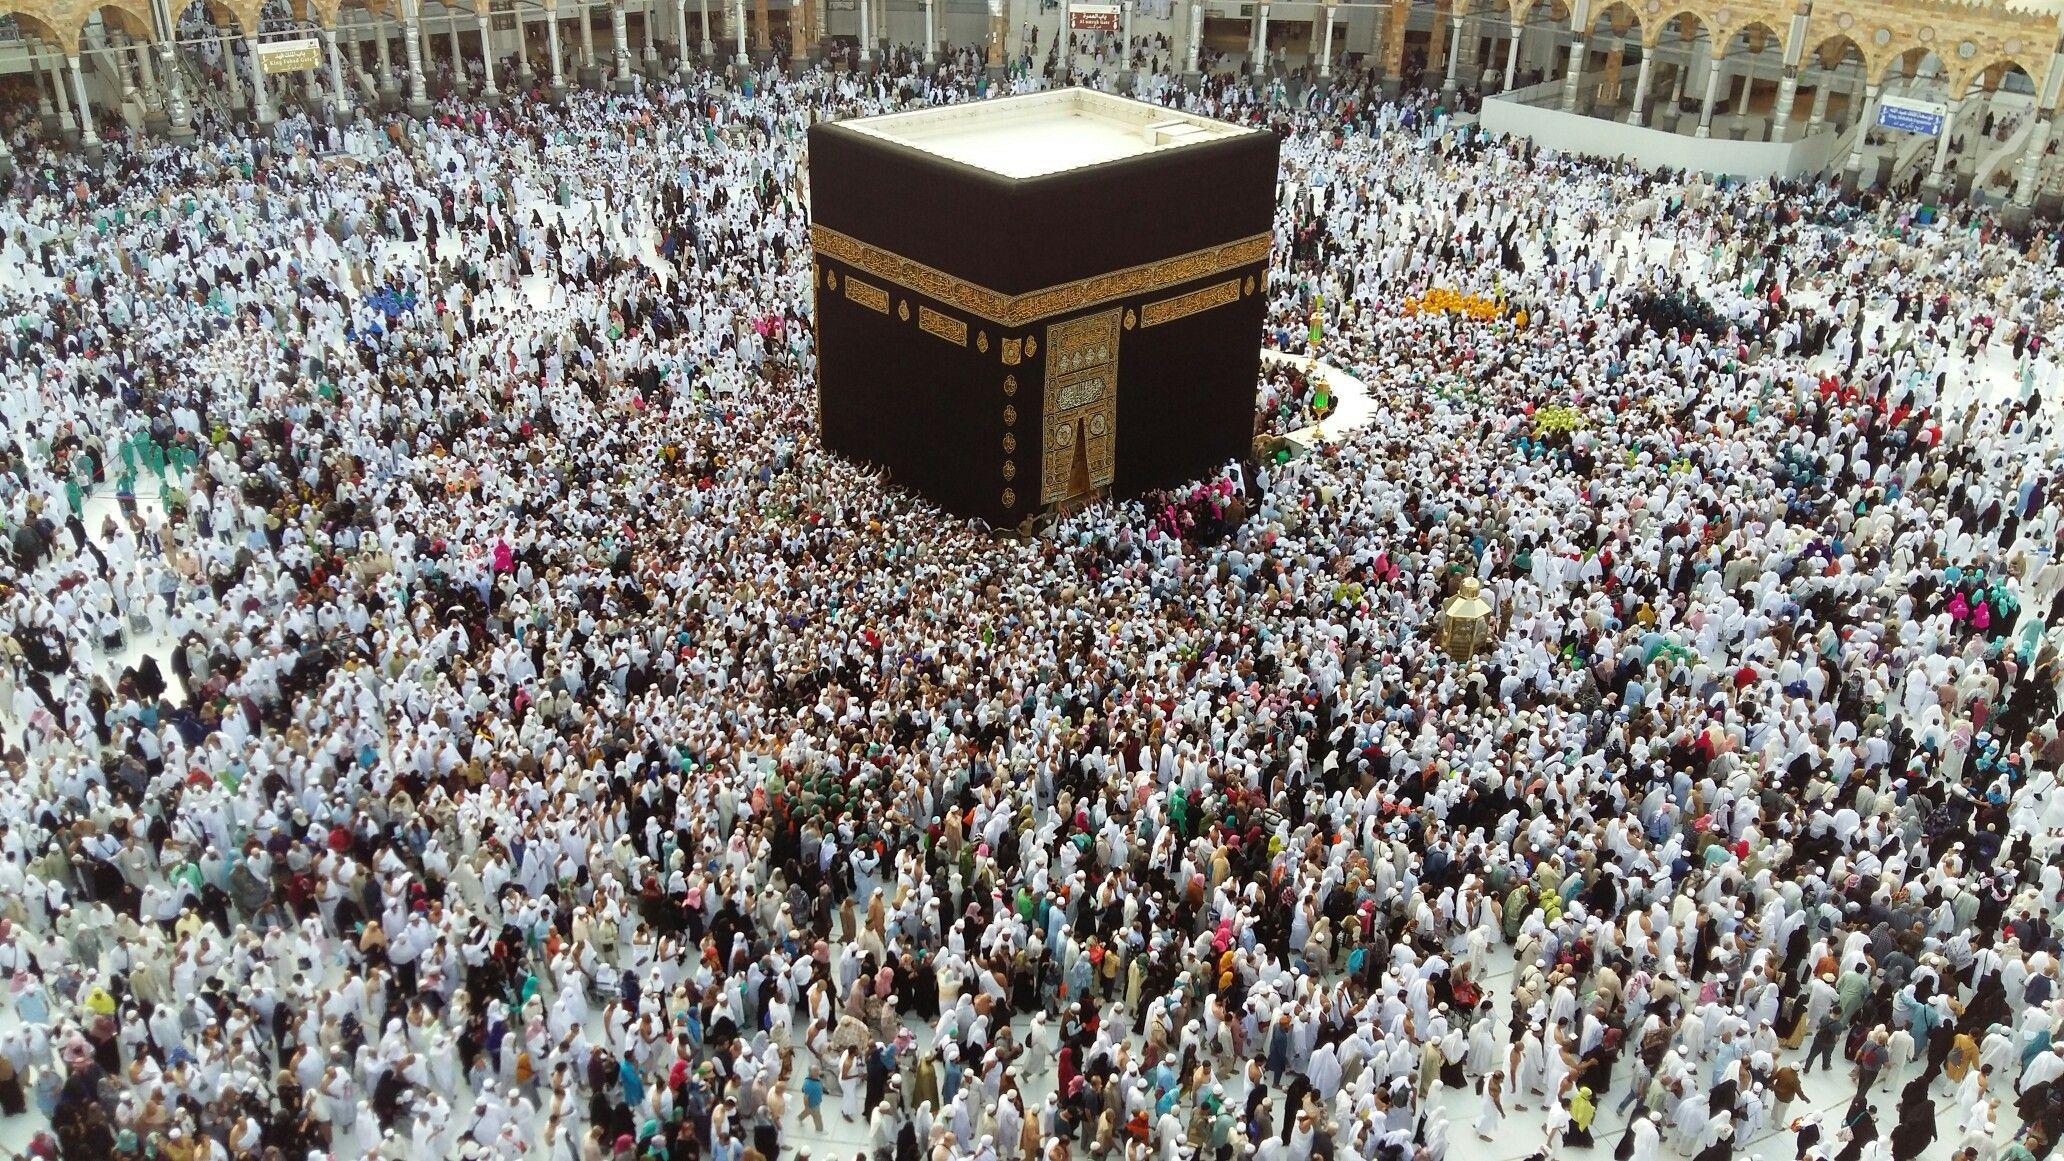 Pin By Zorfa On Islamic Pictures Islamic Pictures City Photo Aerial